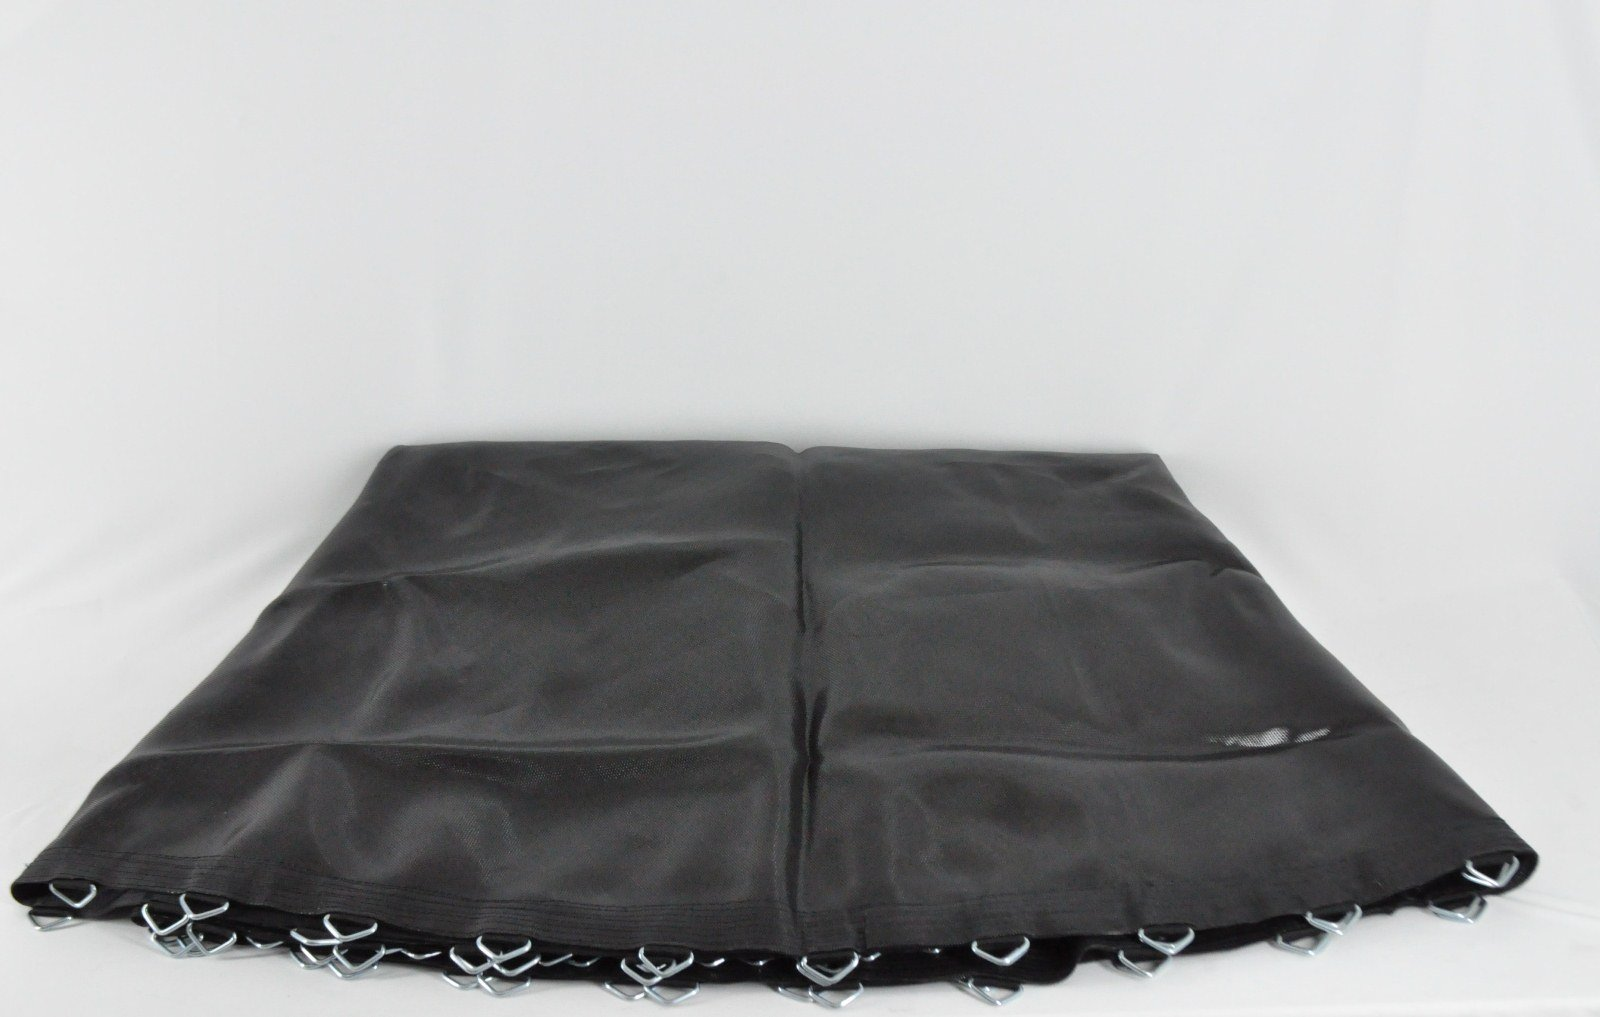 Trampoline Replacement Jumping Mat, fits for 14 FT. Round Frames with 96 V-Rings, Using 7'' springs -MAT ONLY by Upper Bounce (Image #4)